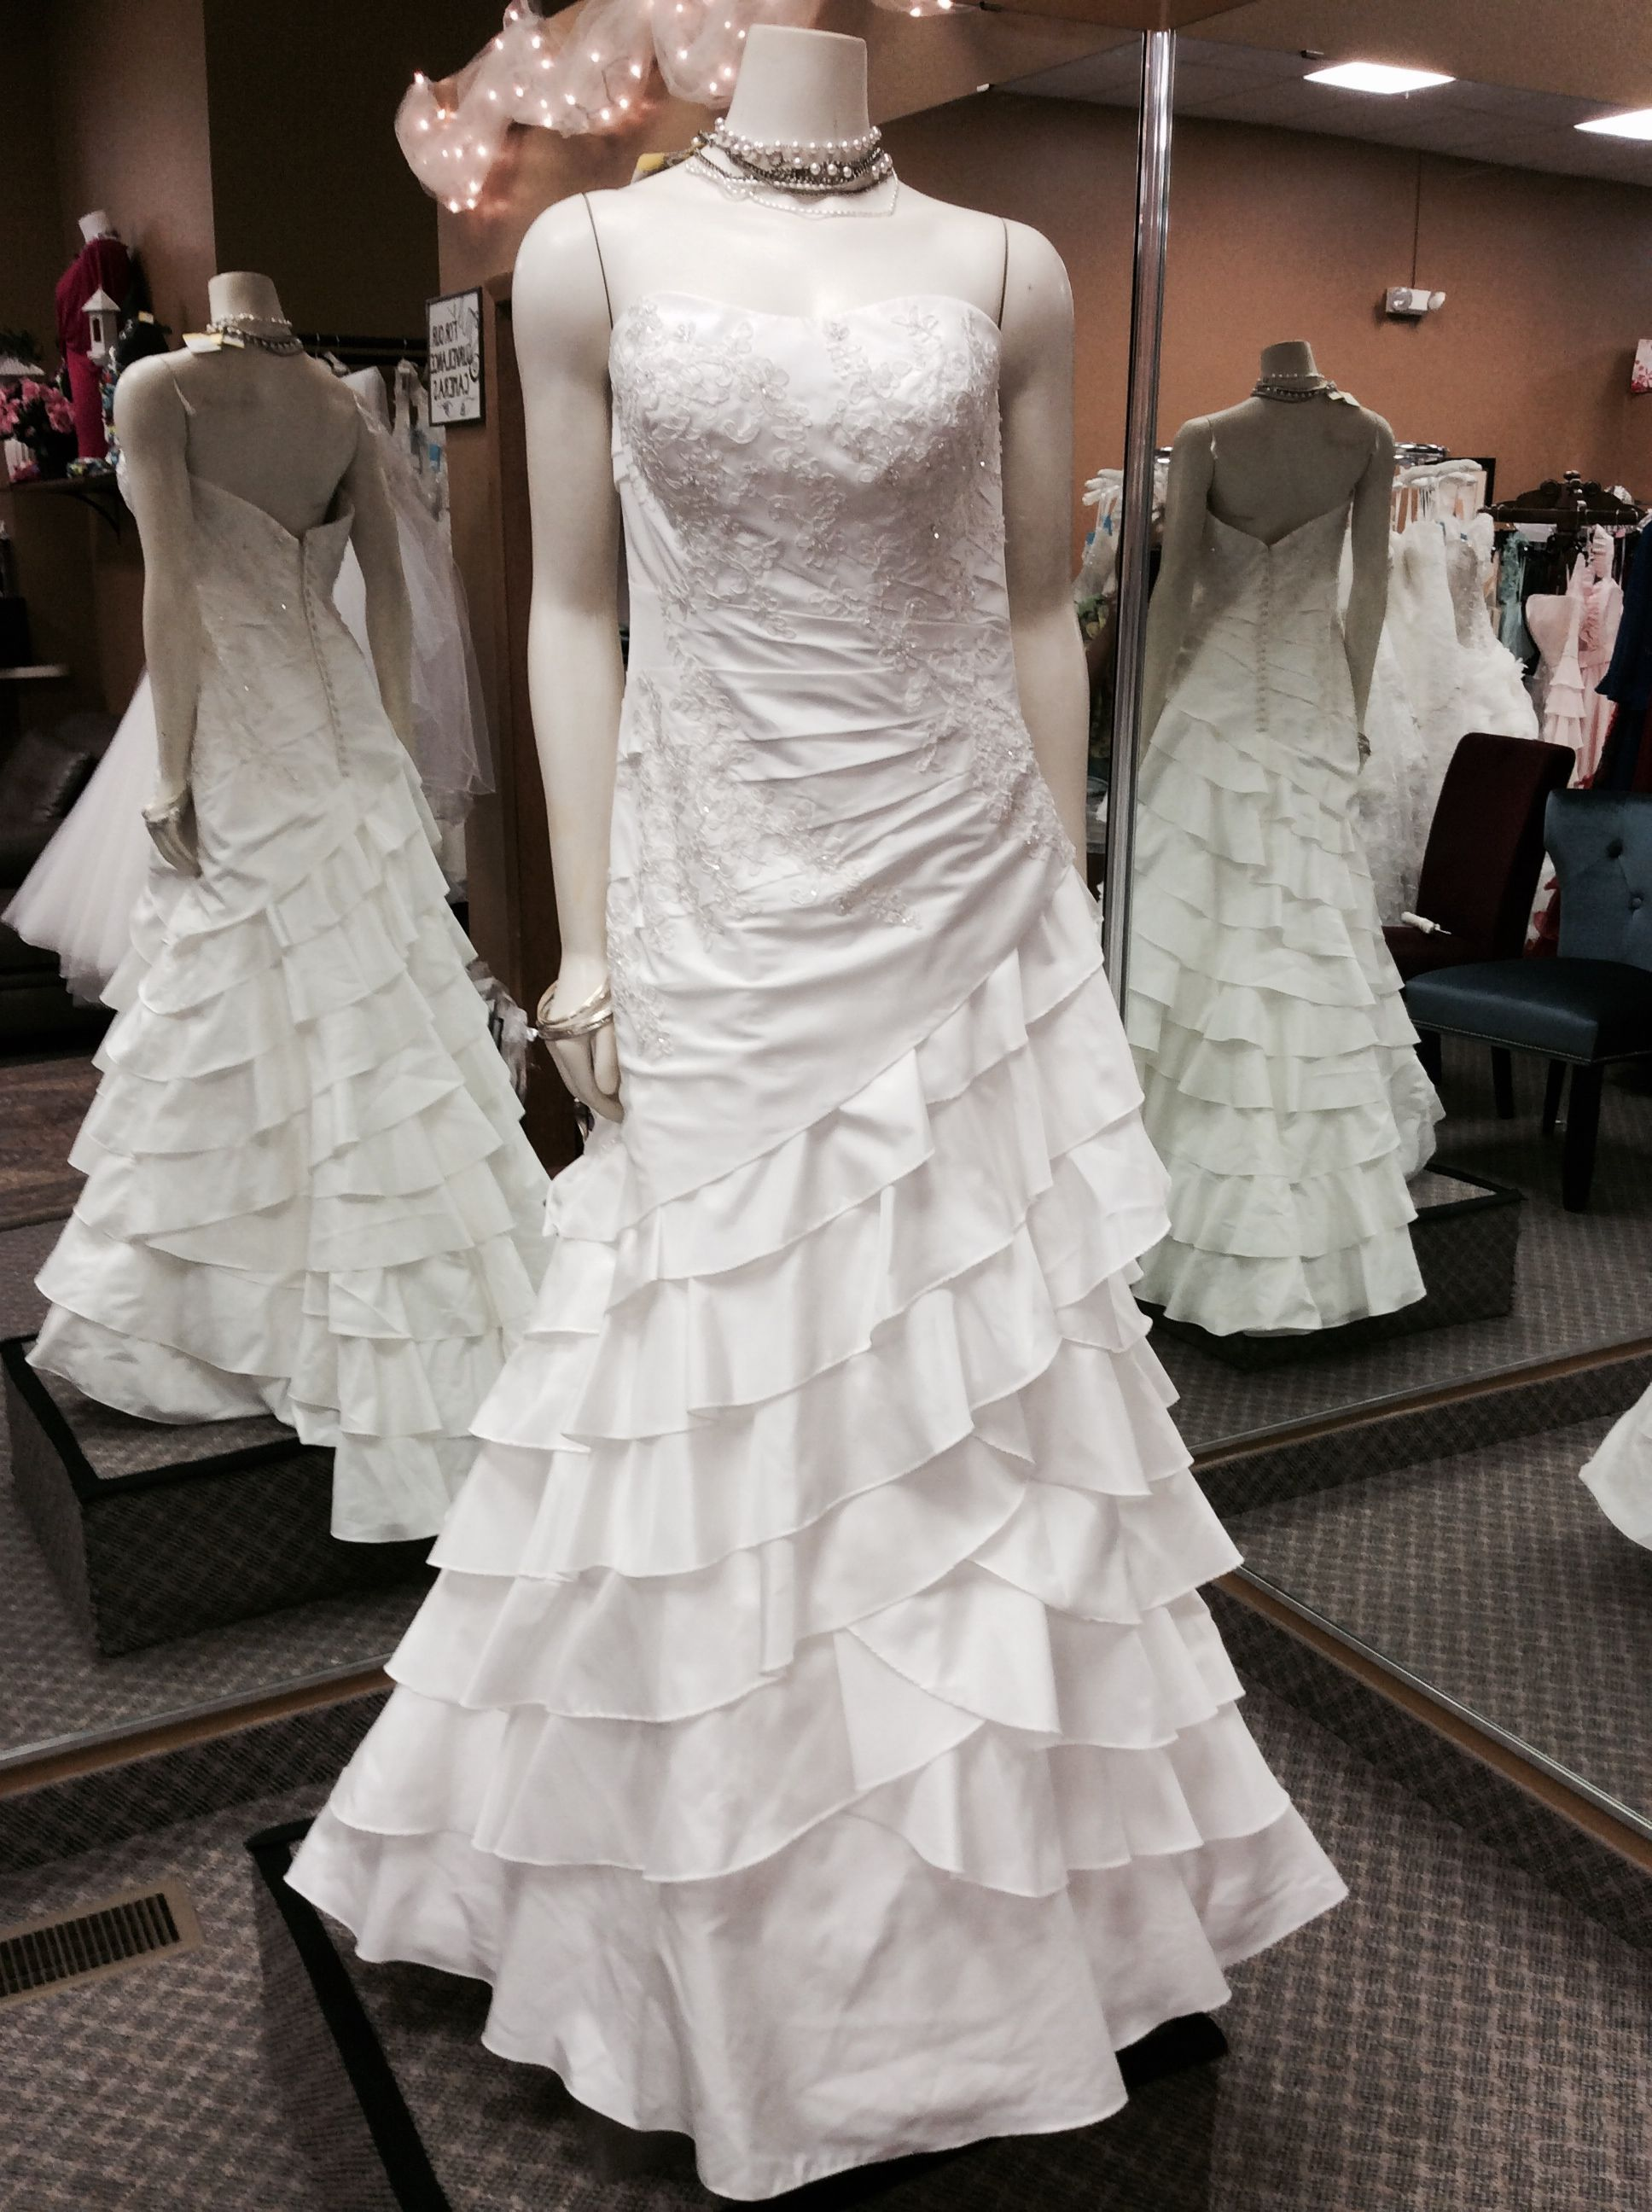 So Many Styles To Choose From High End Wedding Gown Designers Such As Allure Casablanca More The Dress Of Your Dreams Today Or Put